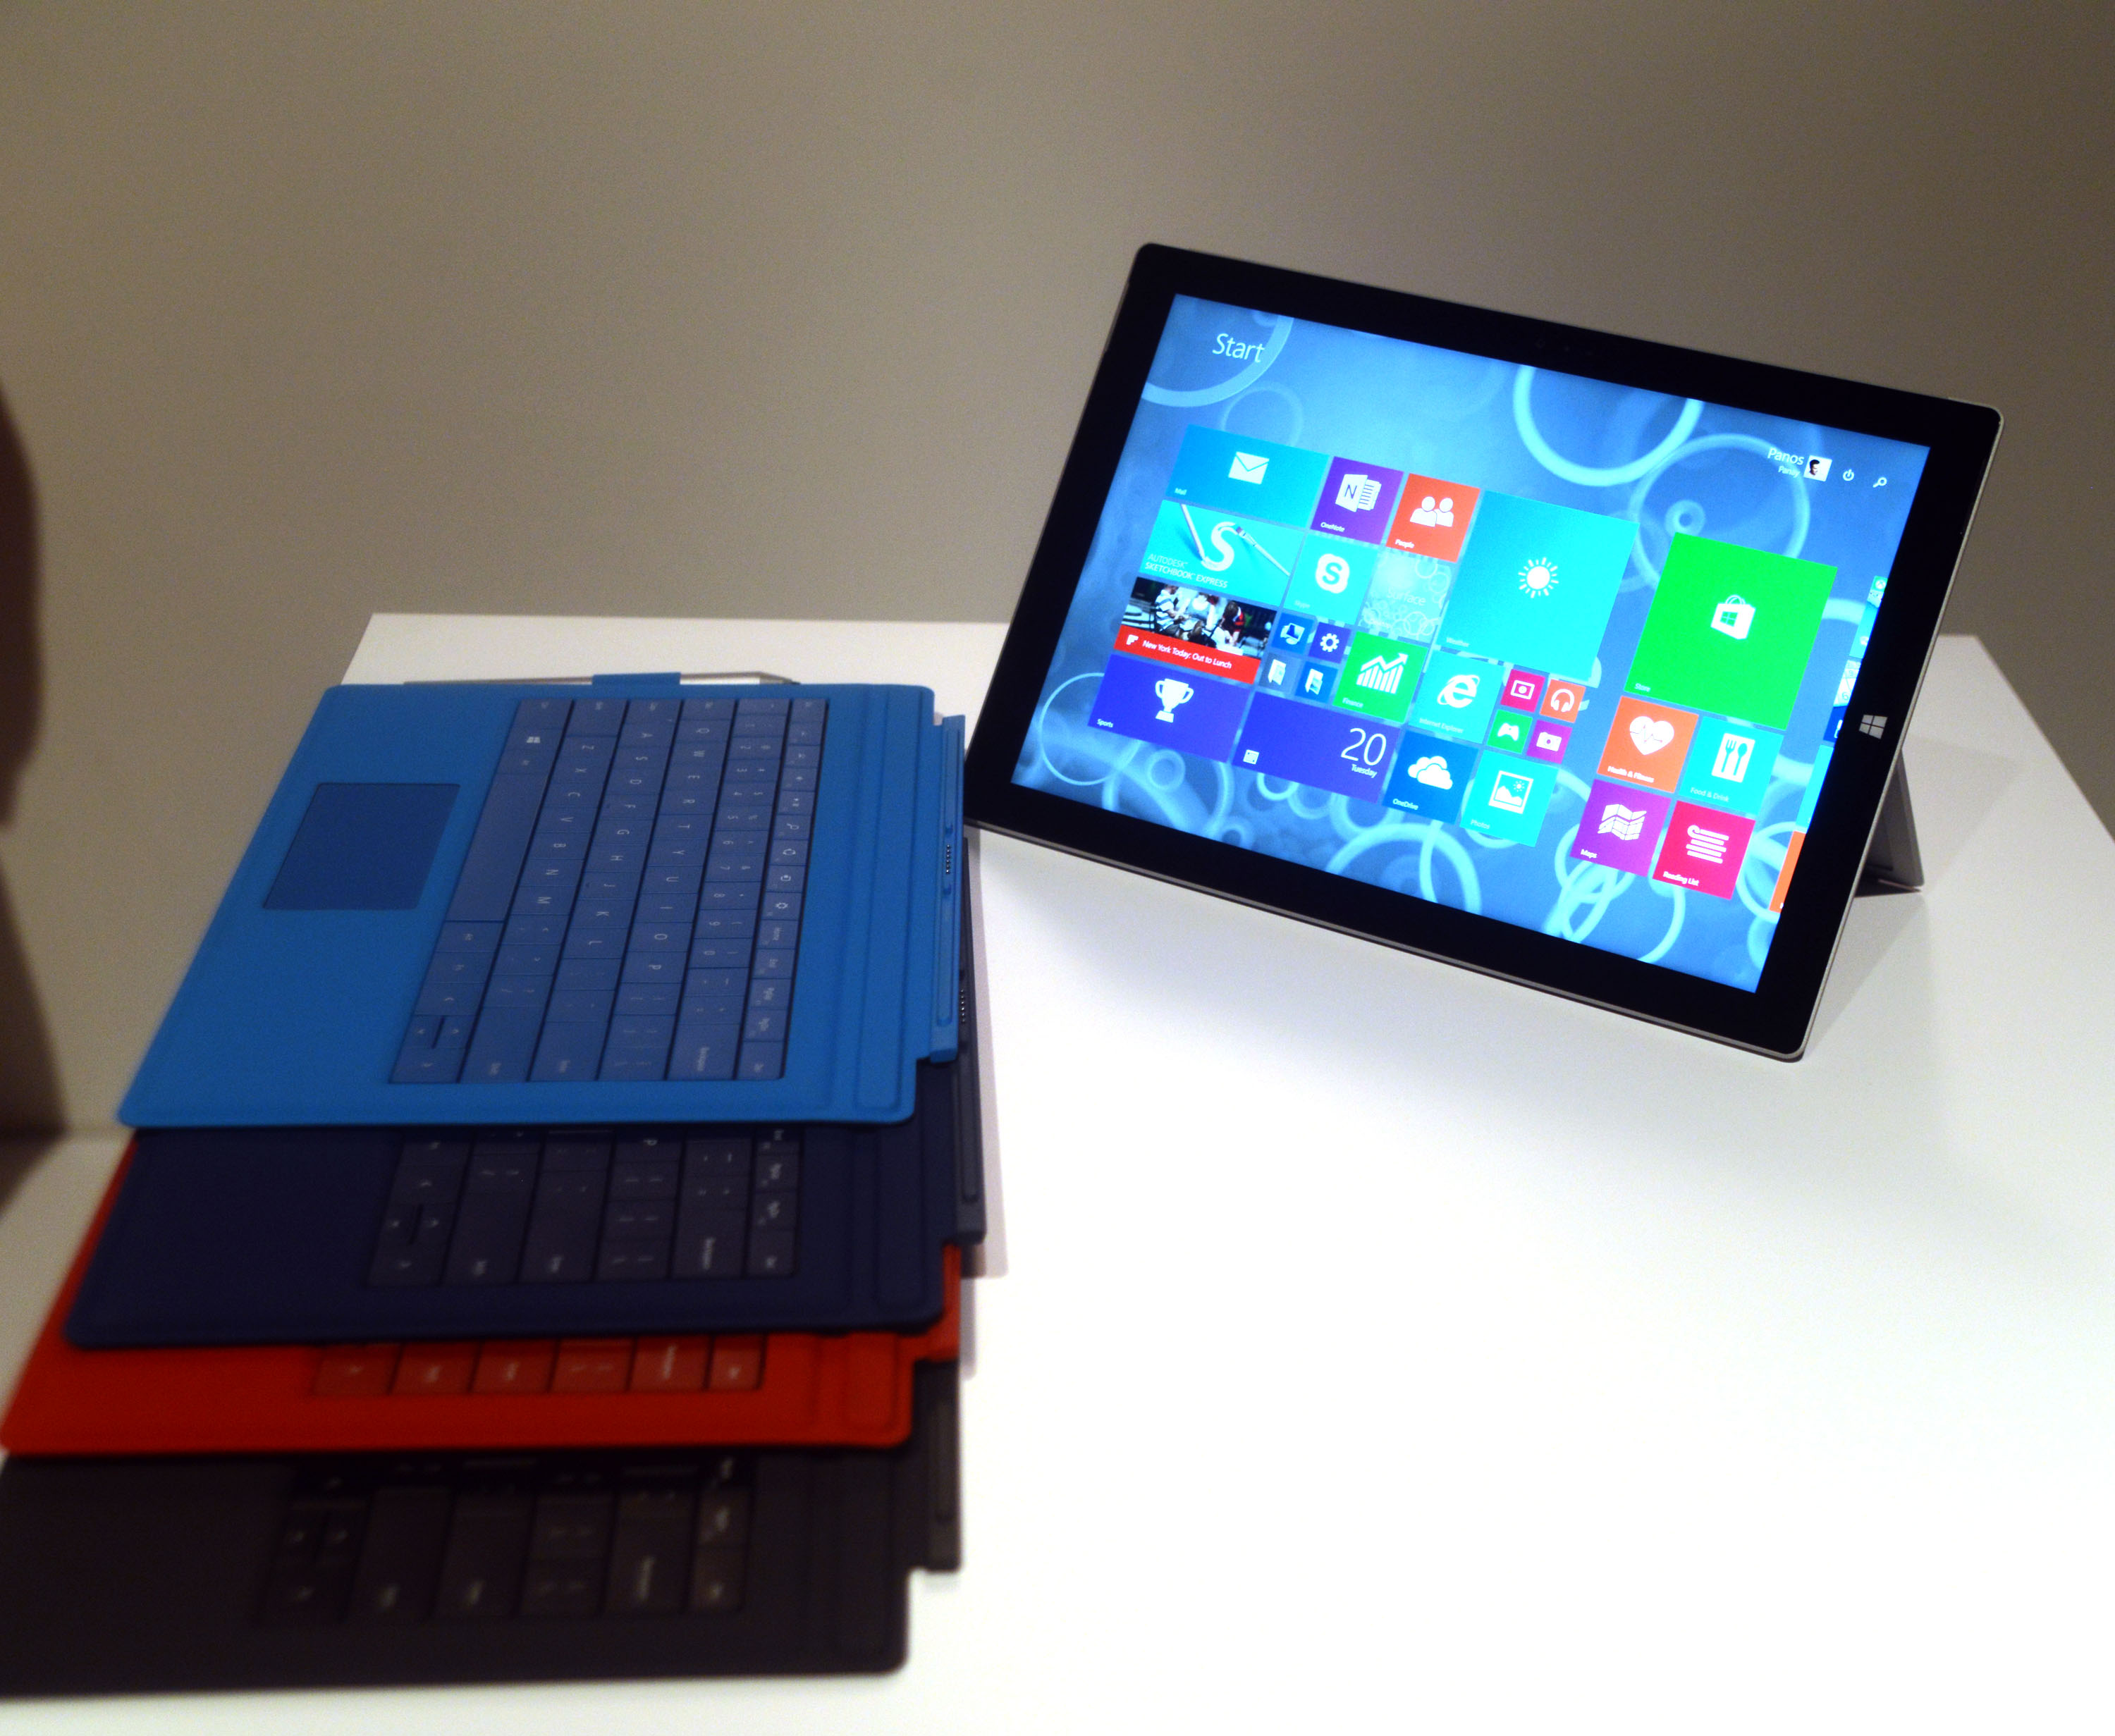 Microsoft PRO 3 Surface Tablet Launch